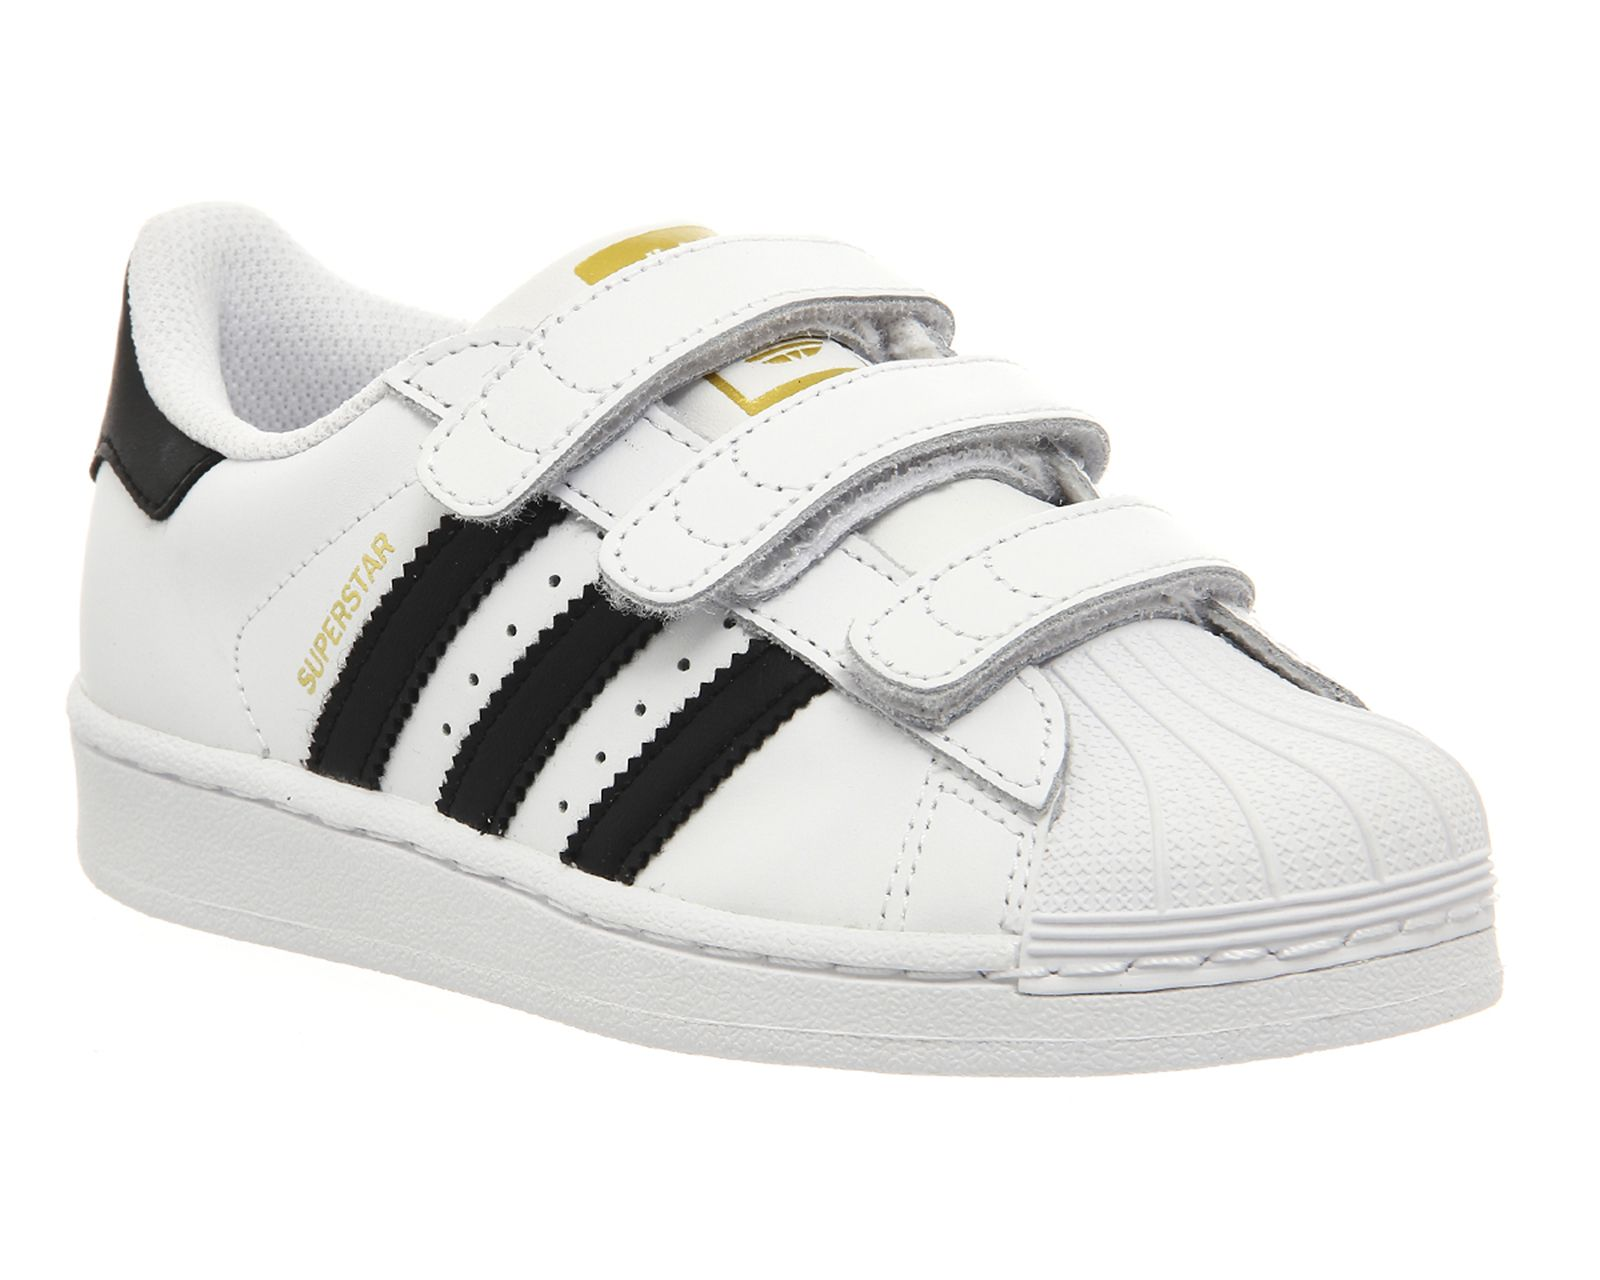 Adidas Superstar Kids 10-2 White Black White Velcro - Unisex